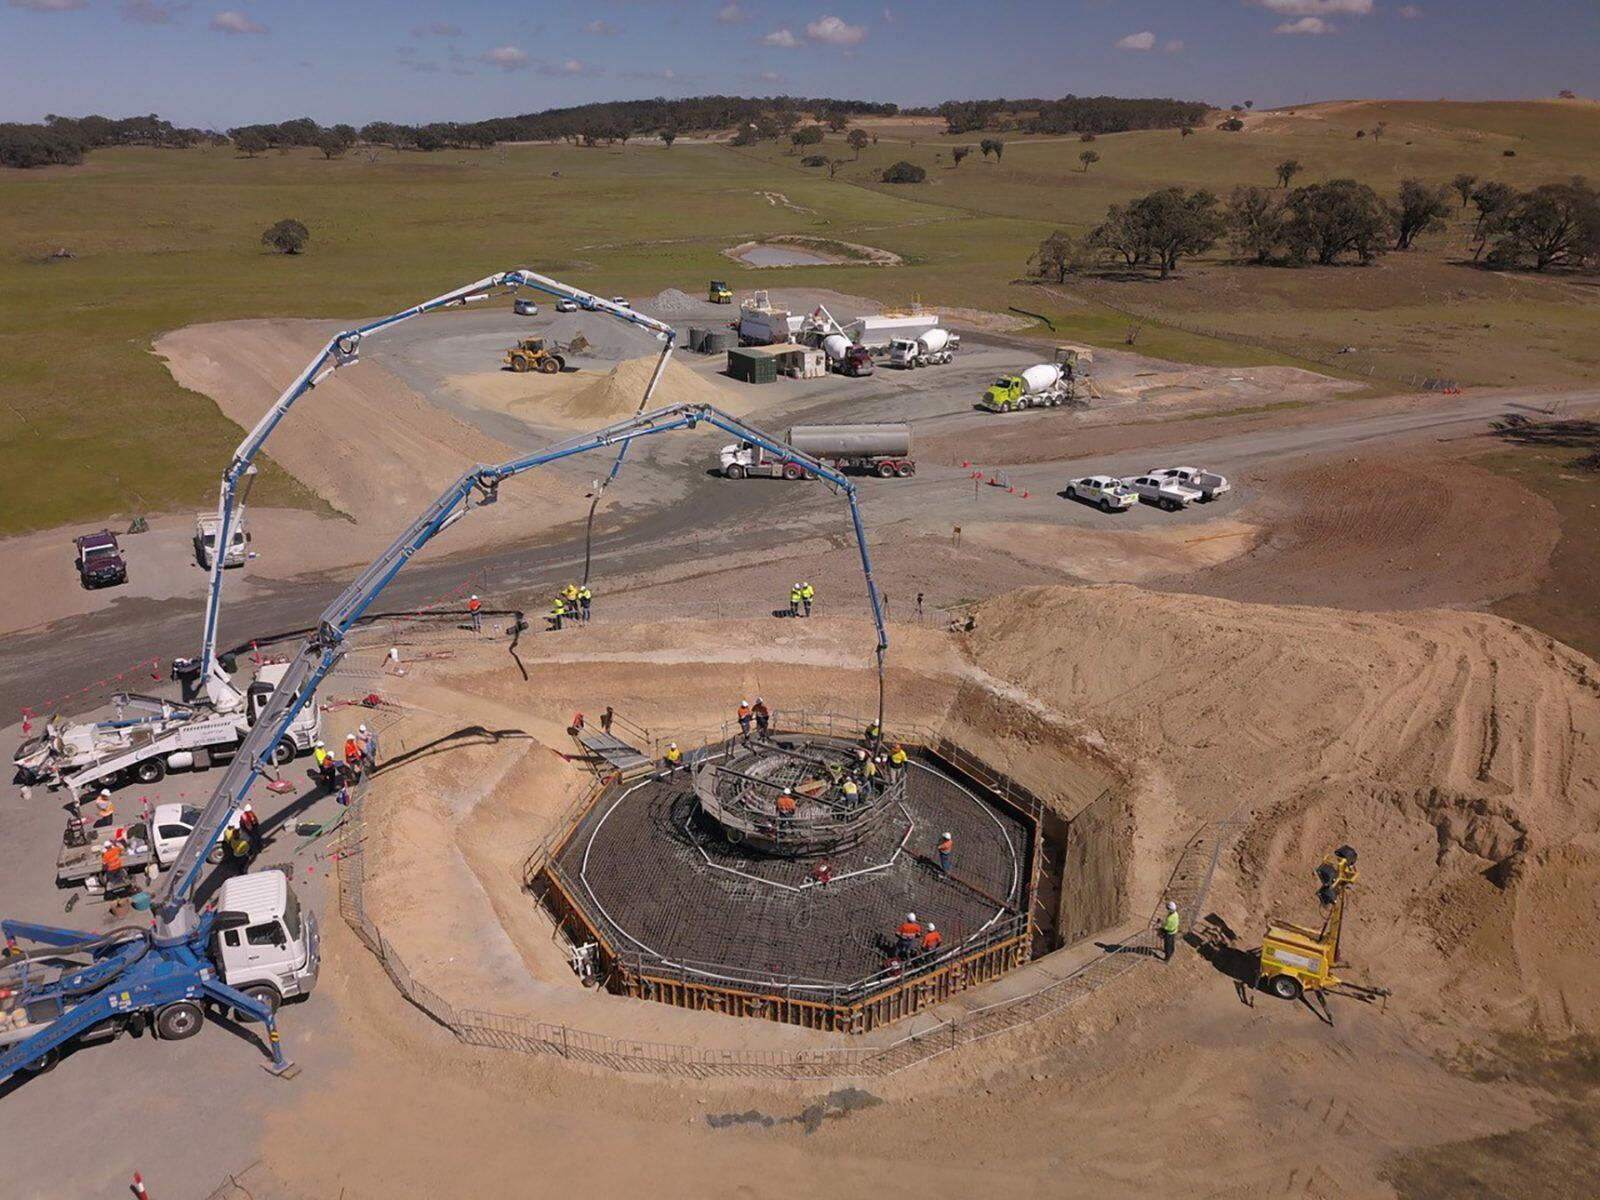 Collector team's first foundation pour and in the background is the mobile concrete batch plant.